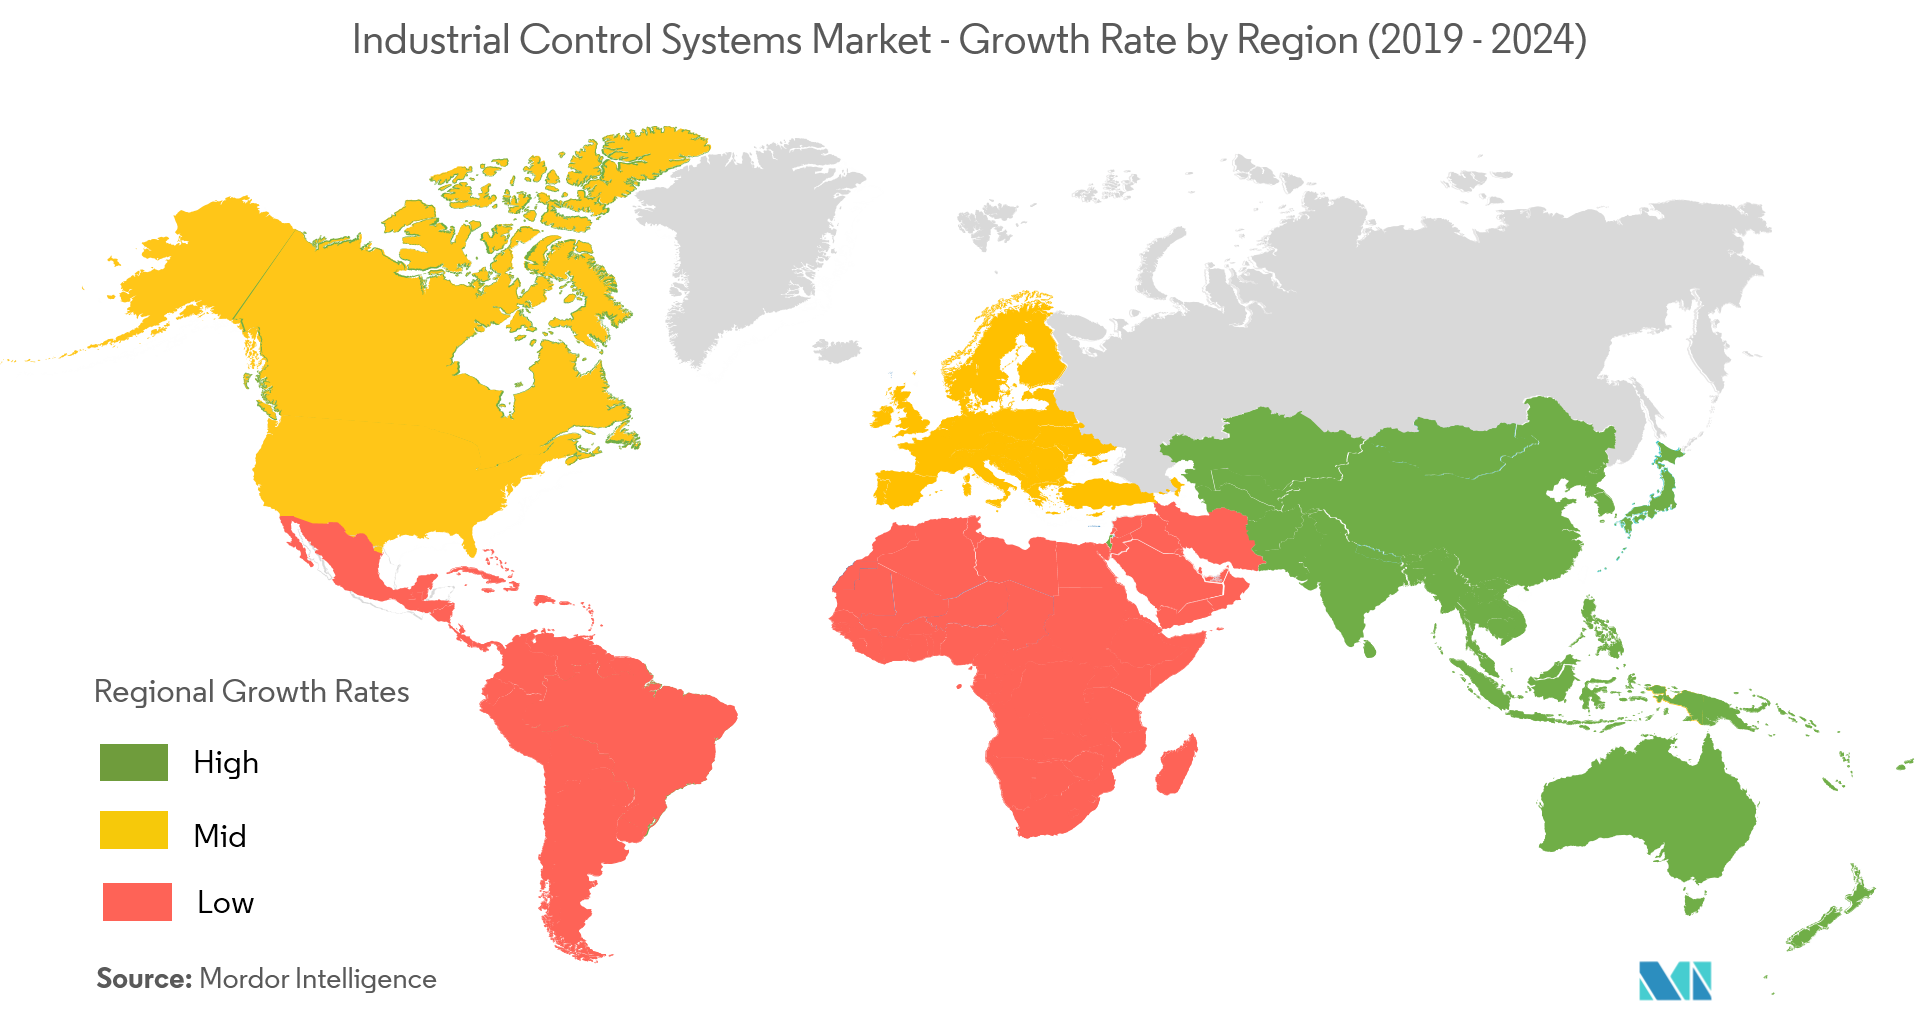 industrial control systems market